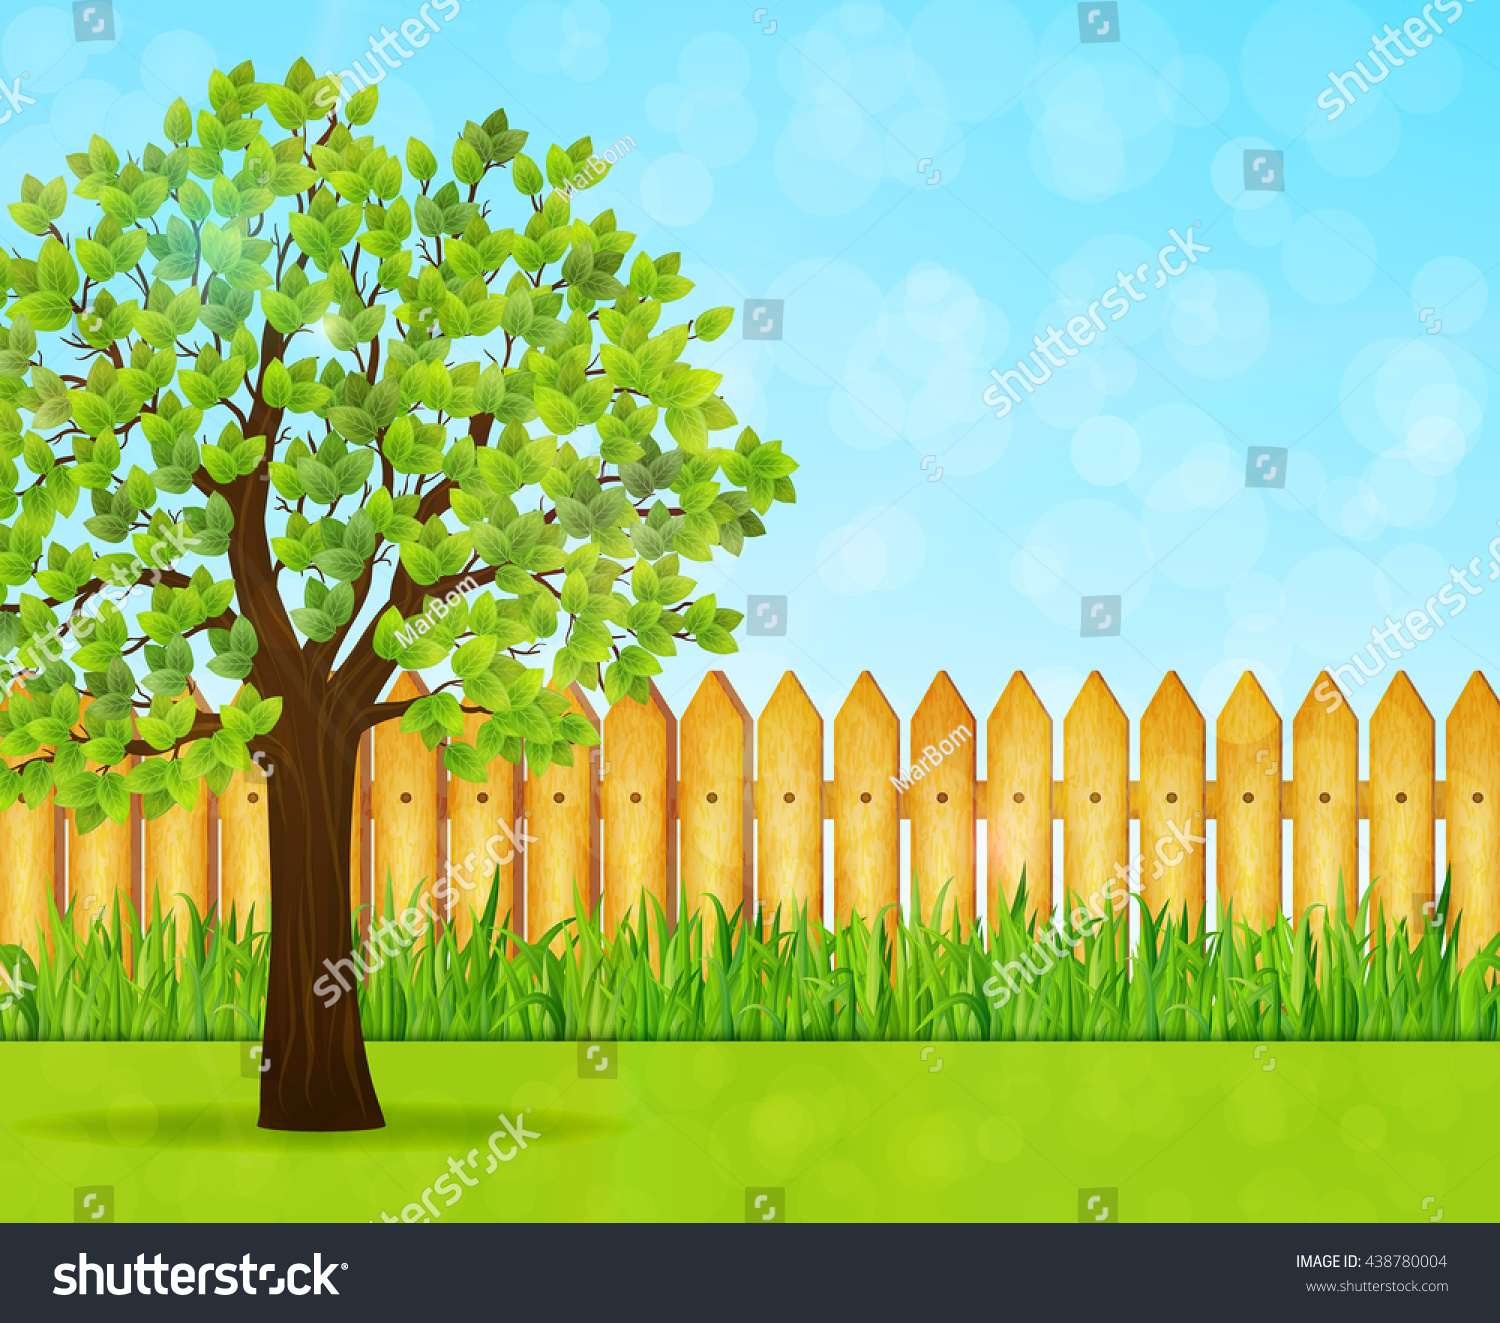 Wooden picket fence transparent backgroundgarden and gardening - Garden Background With Green Tree And Wooden Fence Vector